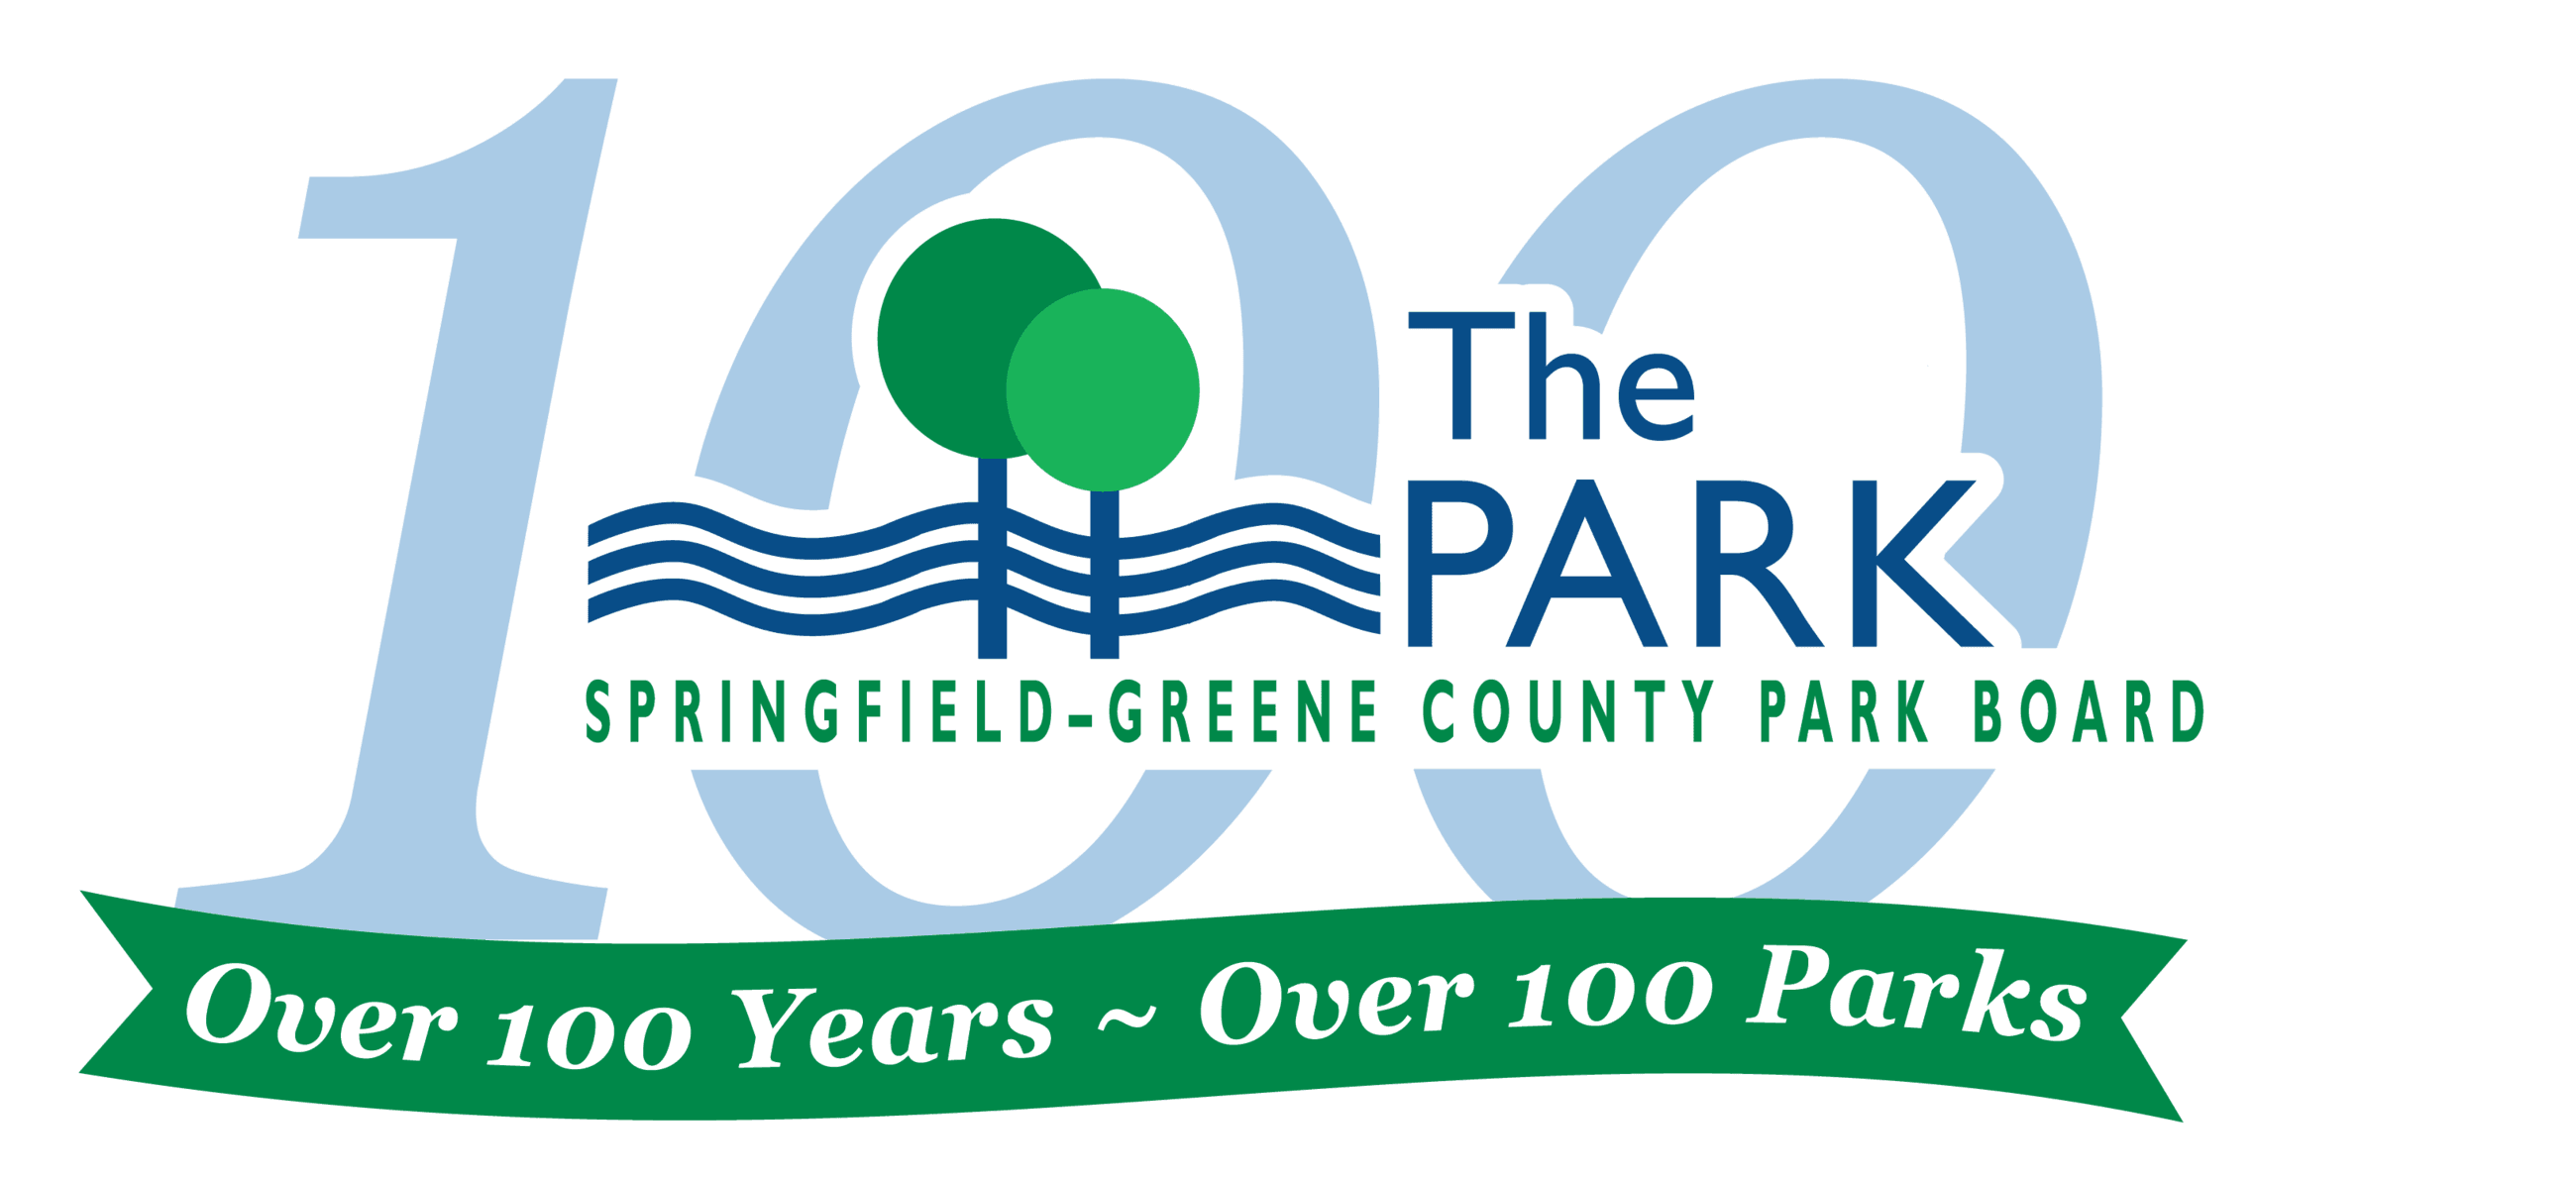 Chesterfield family center springfield greene county park board the park 1betcityfo Image collections